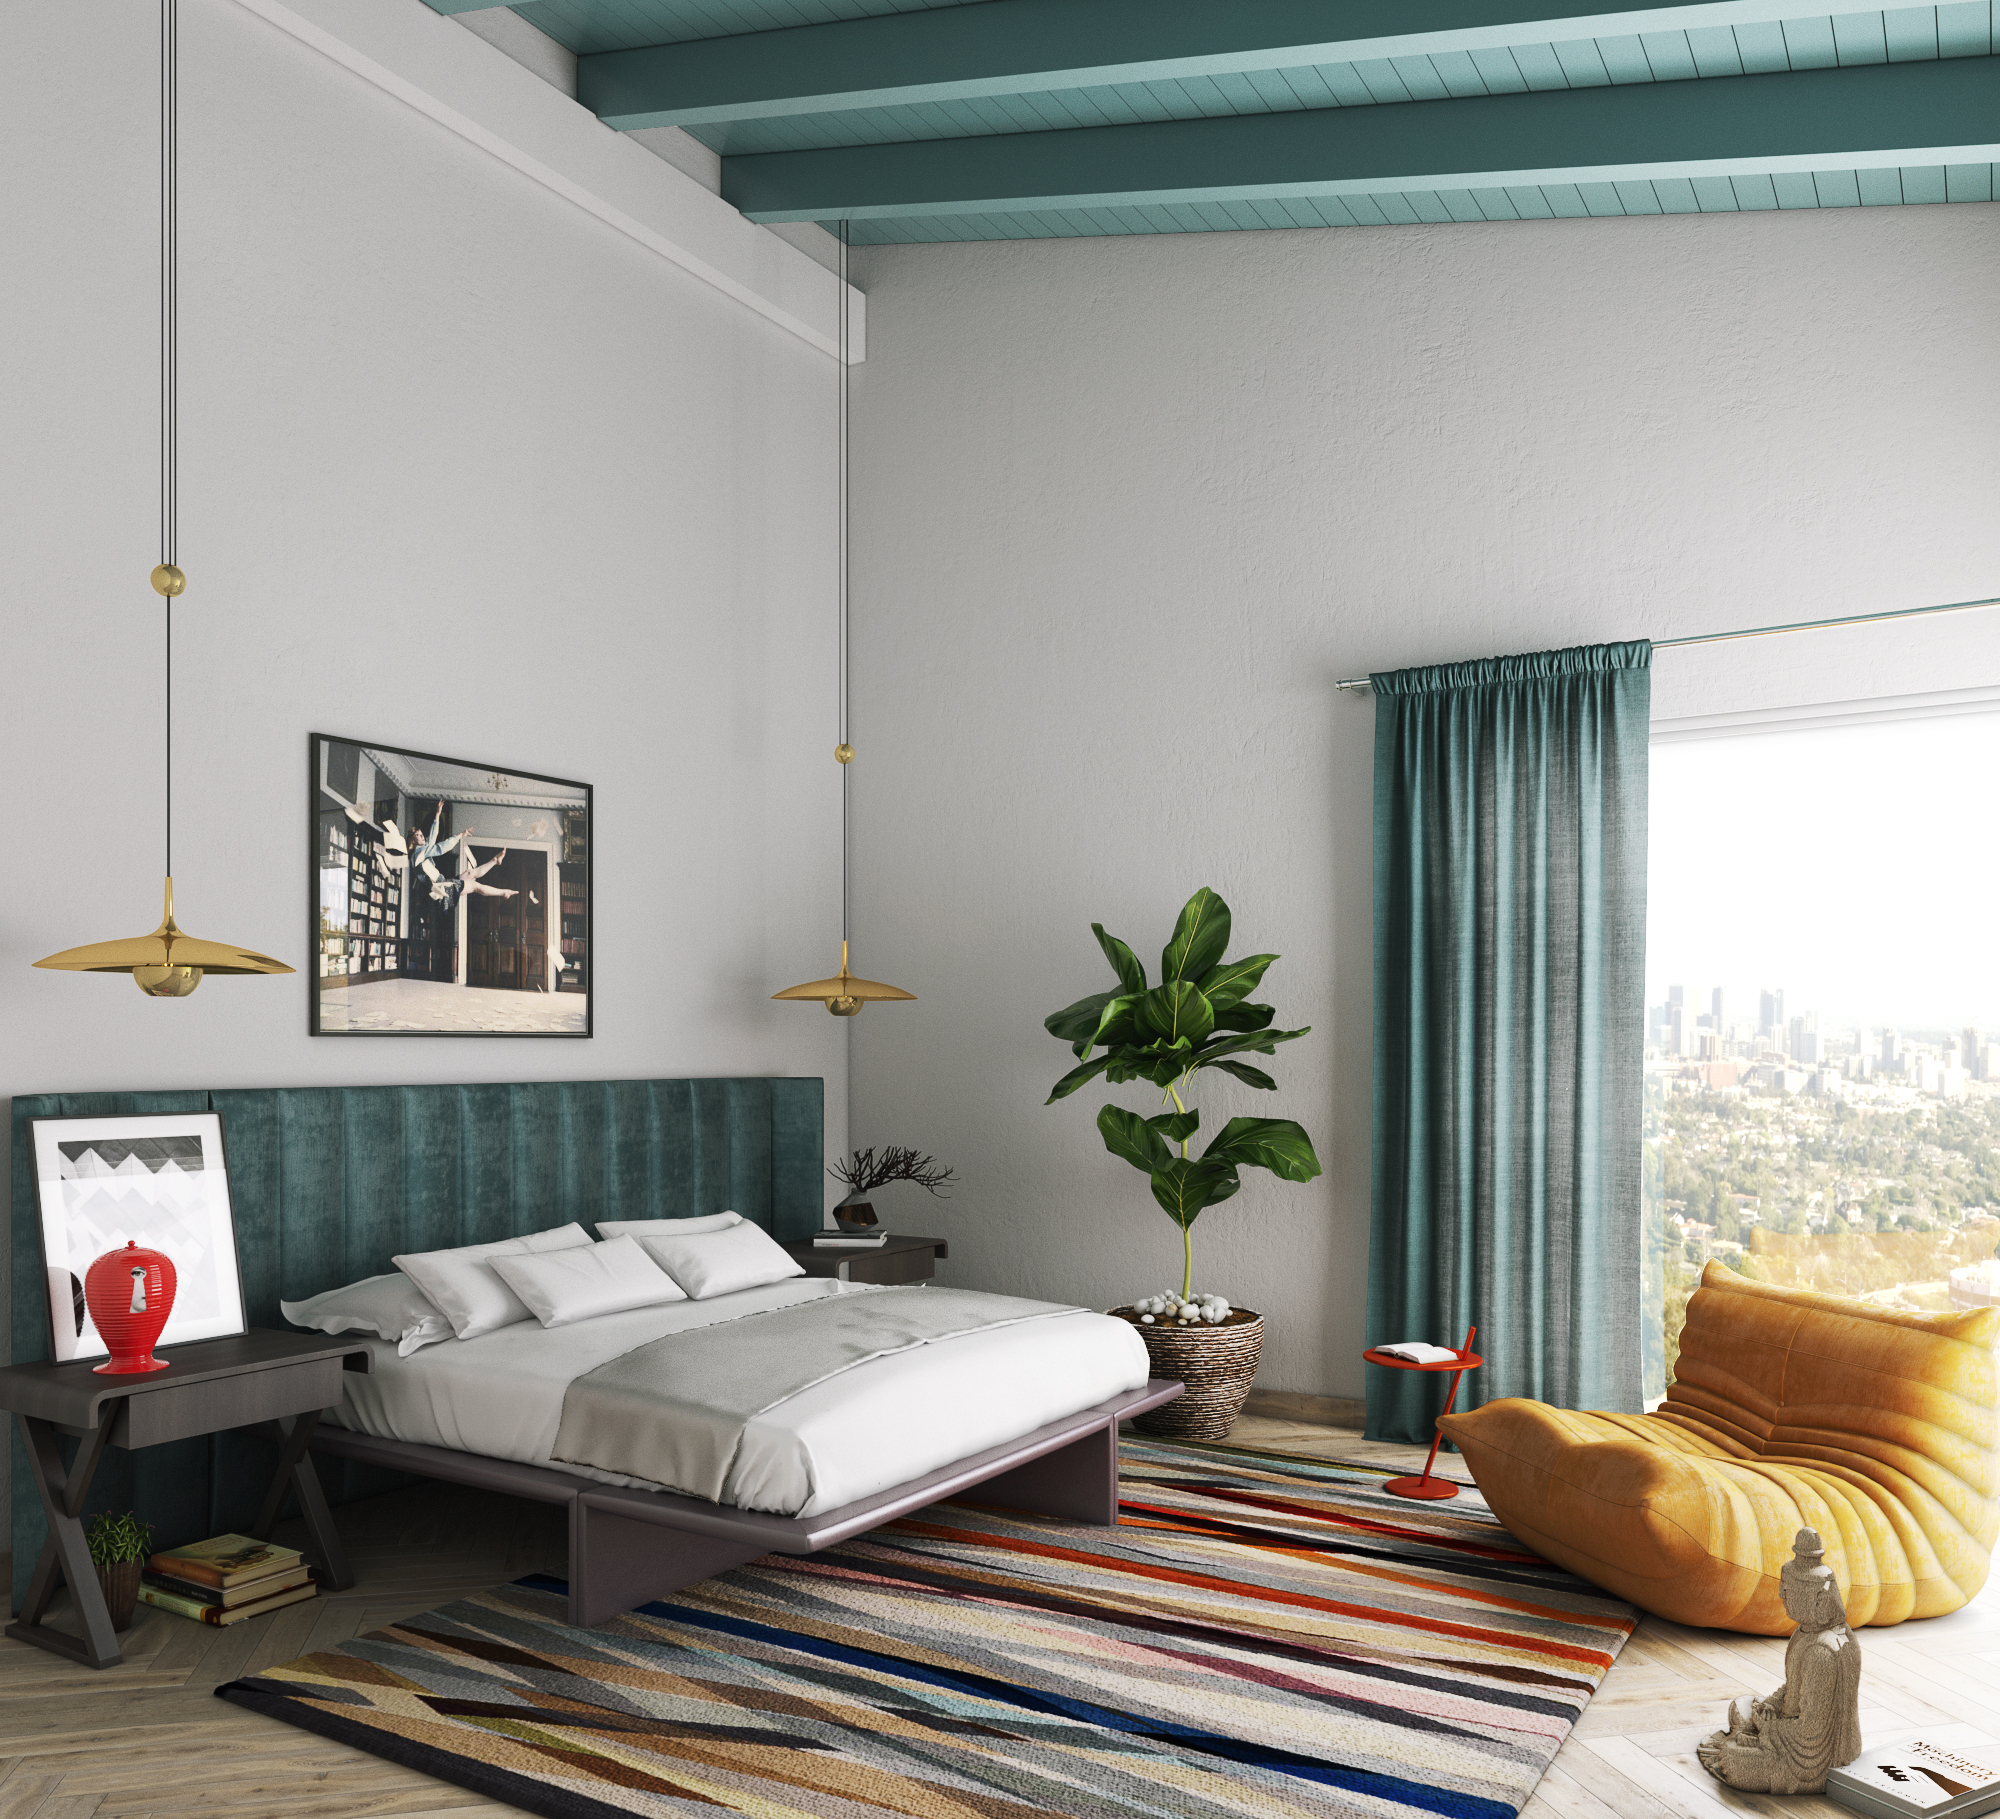 High ceilings, high drama and measured pops of bold color by mr. alex TATE